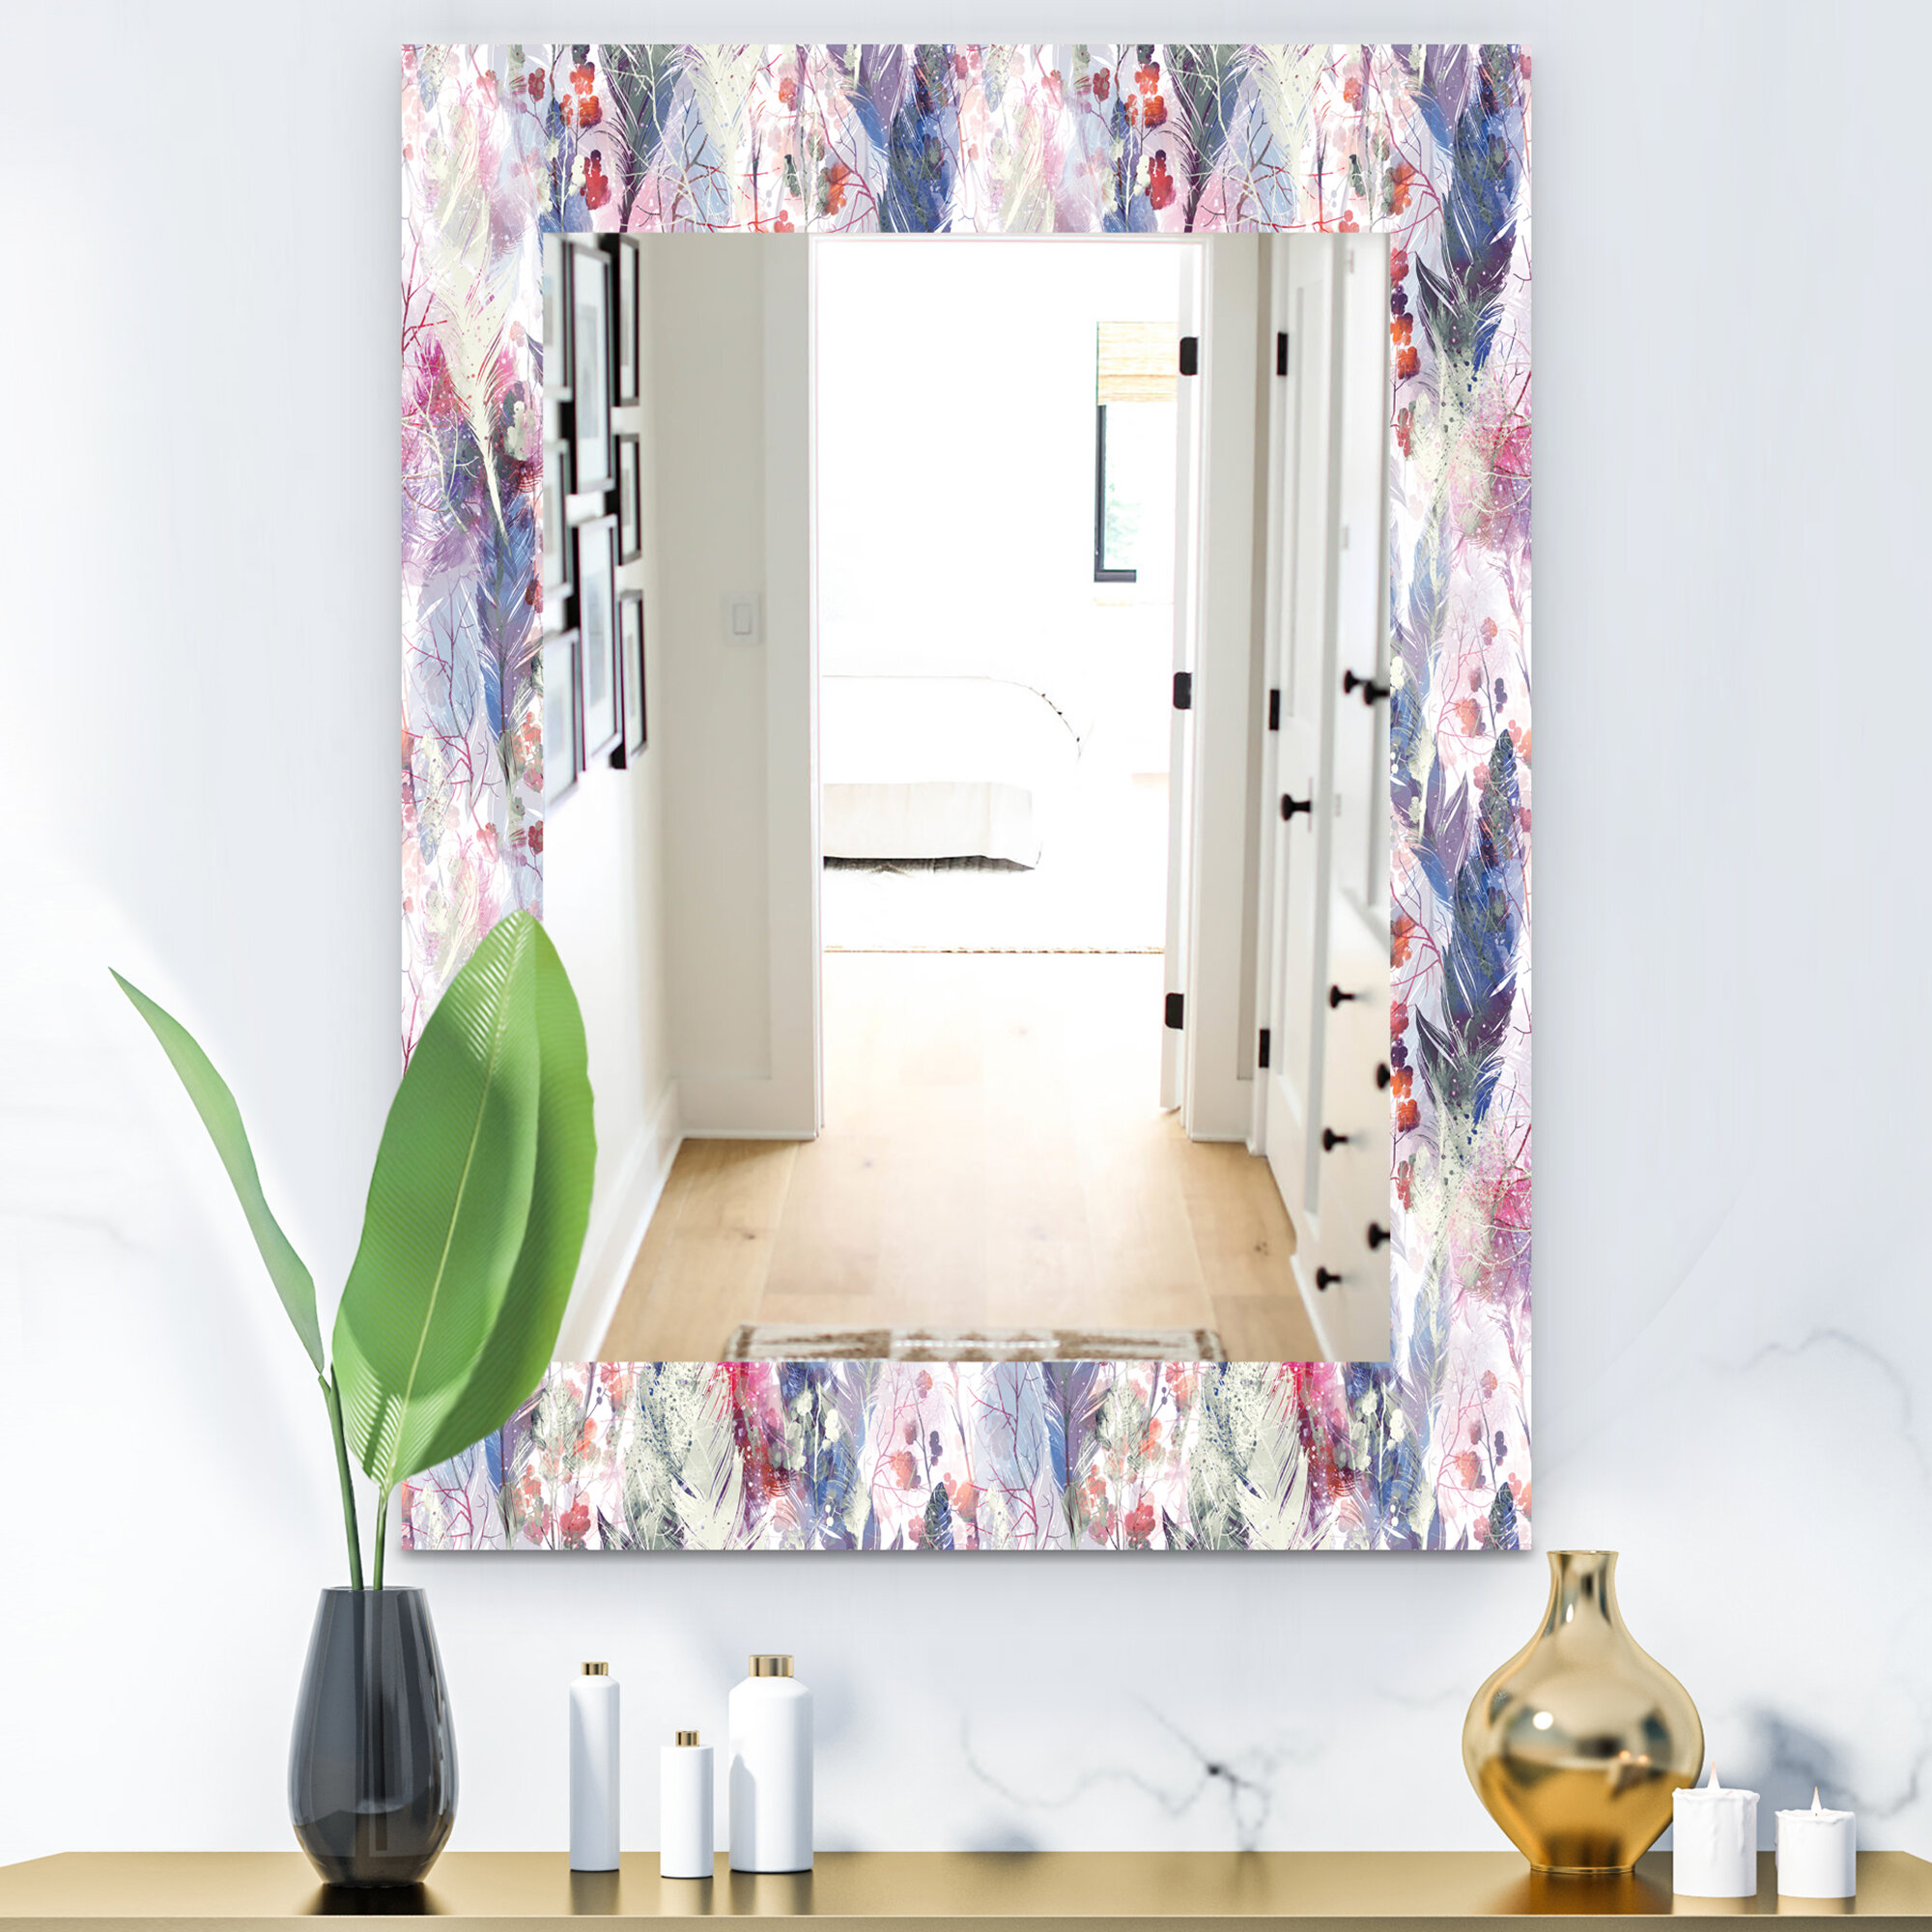 East Urban Home Feathers Eclectic Frameless Accent Mirror